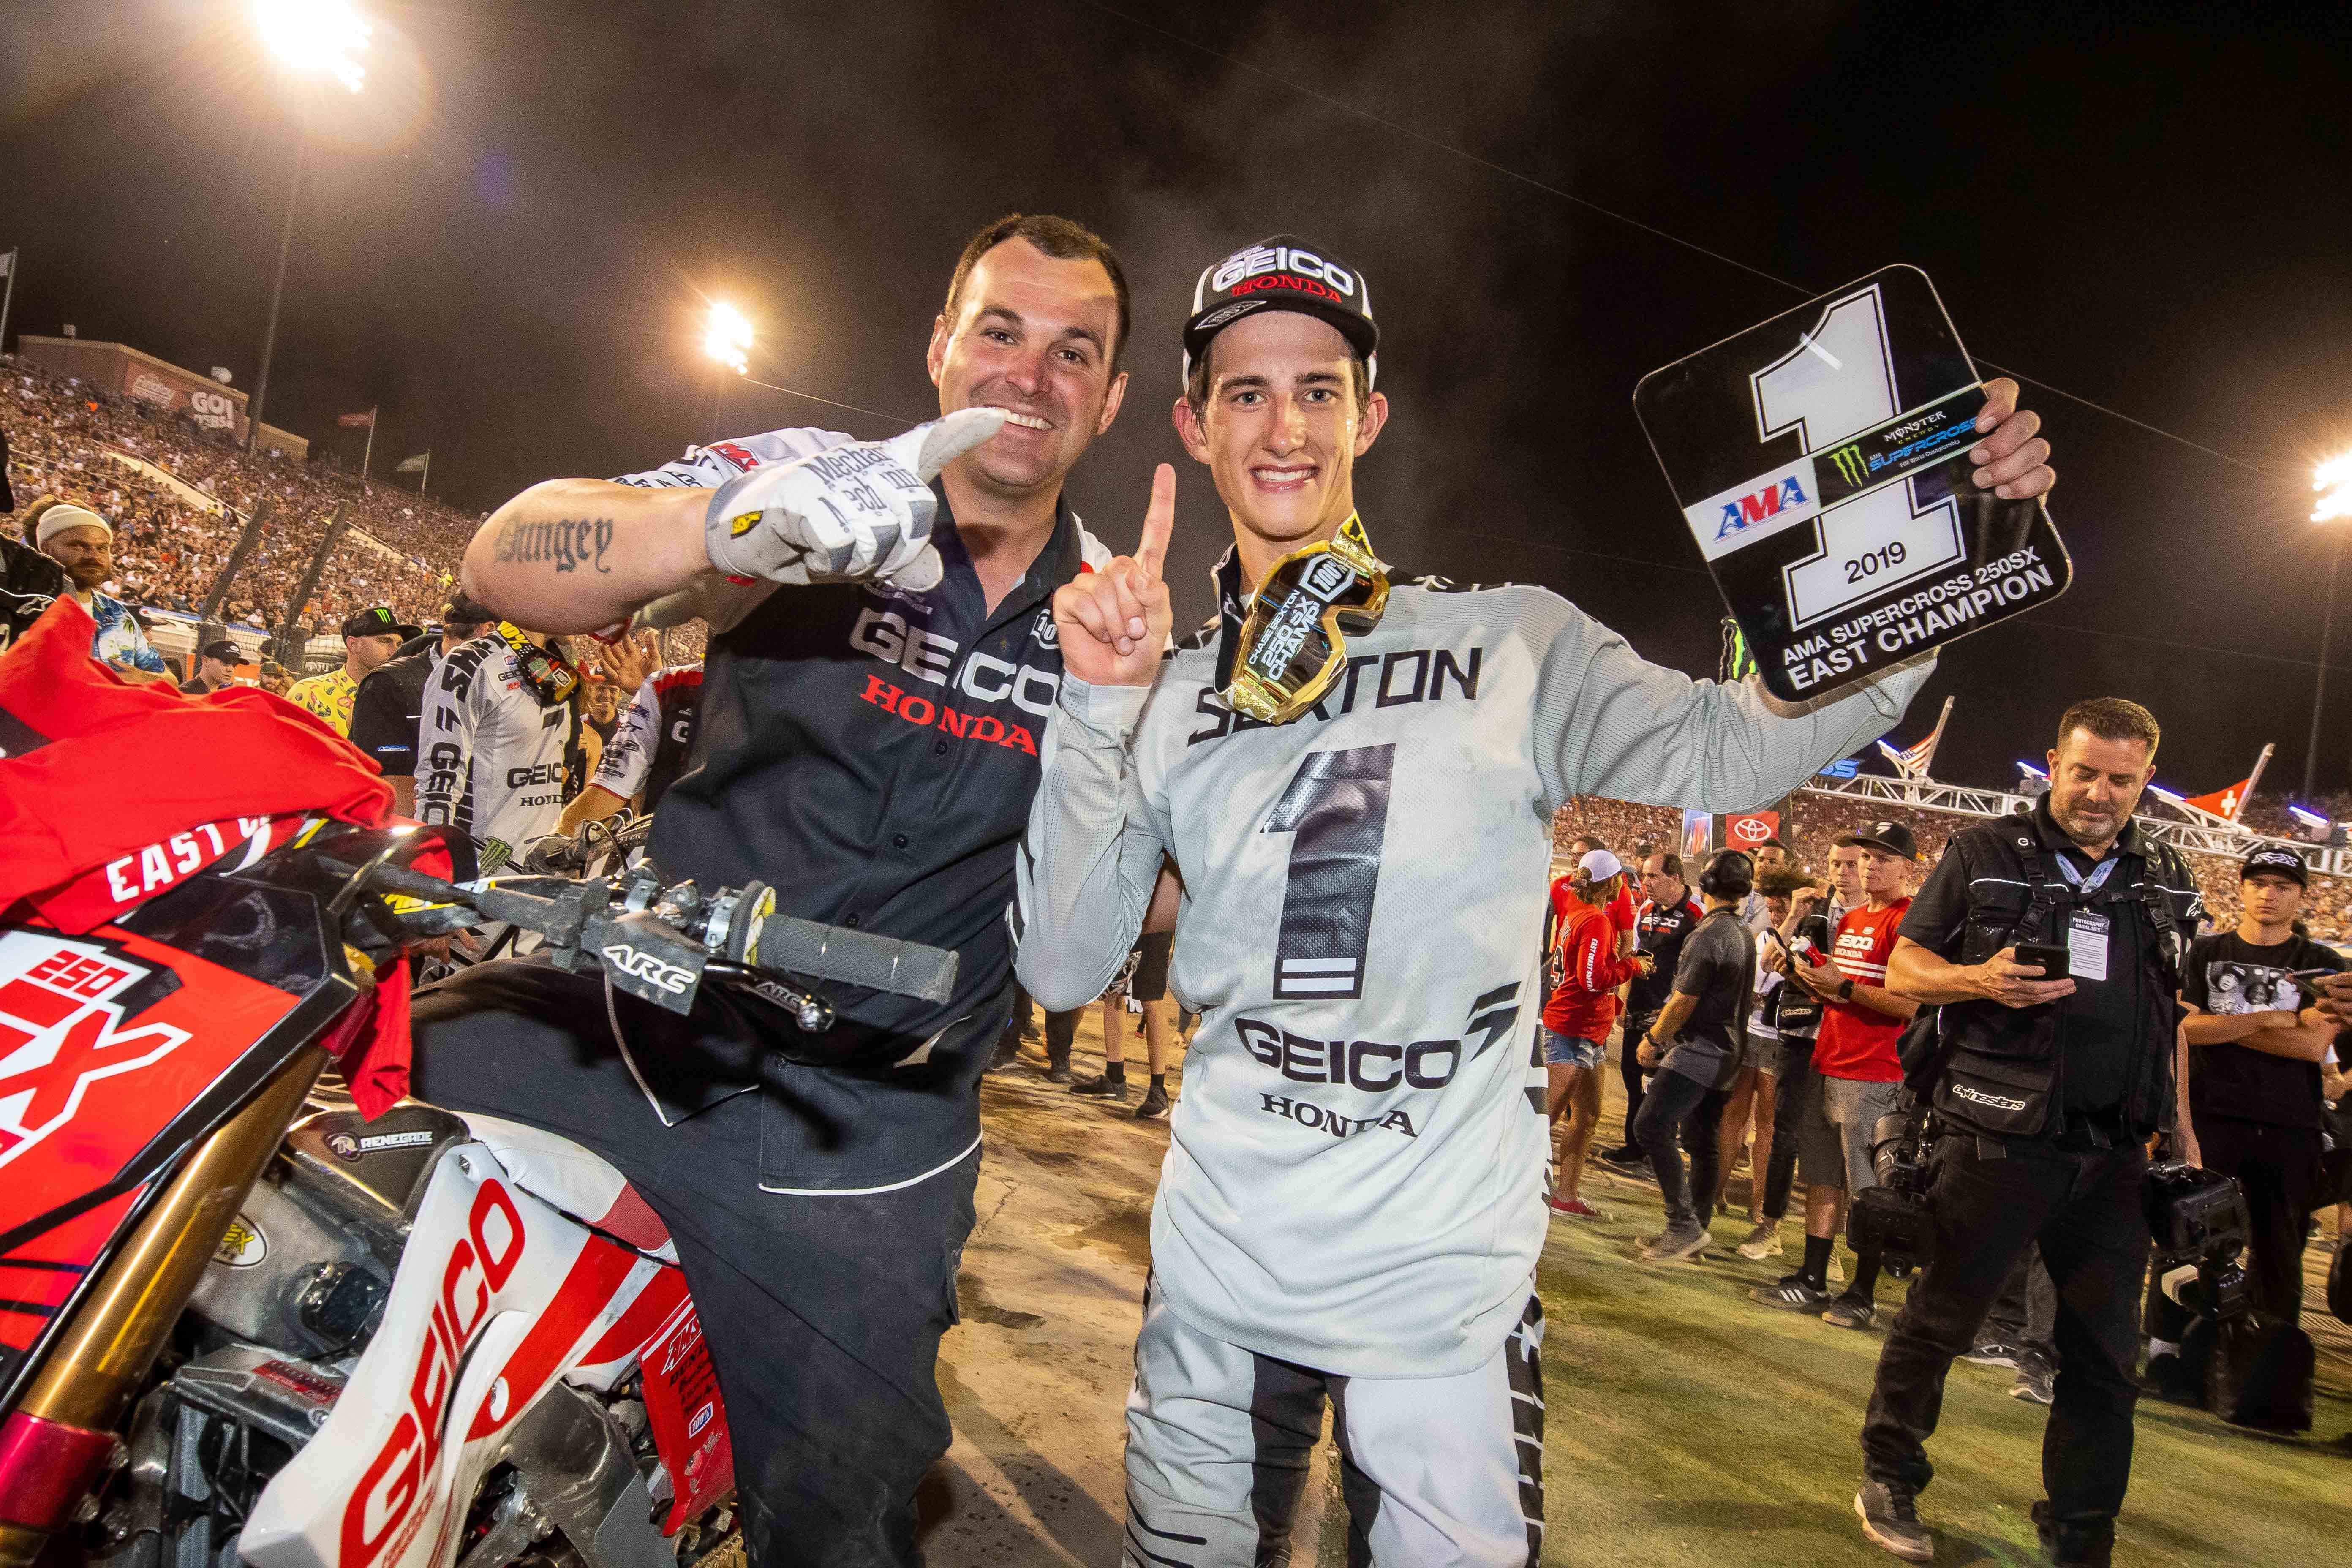 WISECO RIDER CHASE SEXTON CLINCHES MONSTER ENERGY SUPERCROSS EASTERN REGIONAL 250SX CLASS TITLE